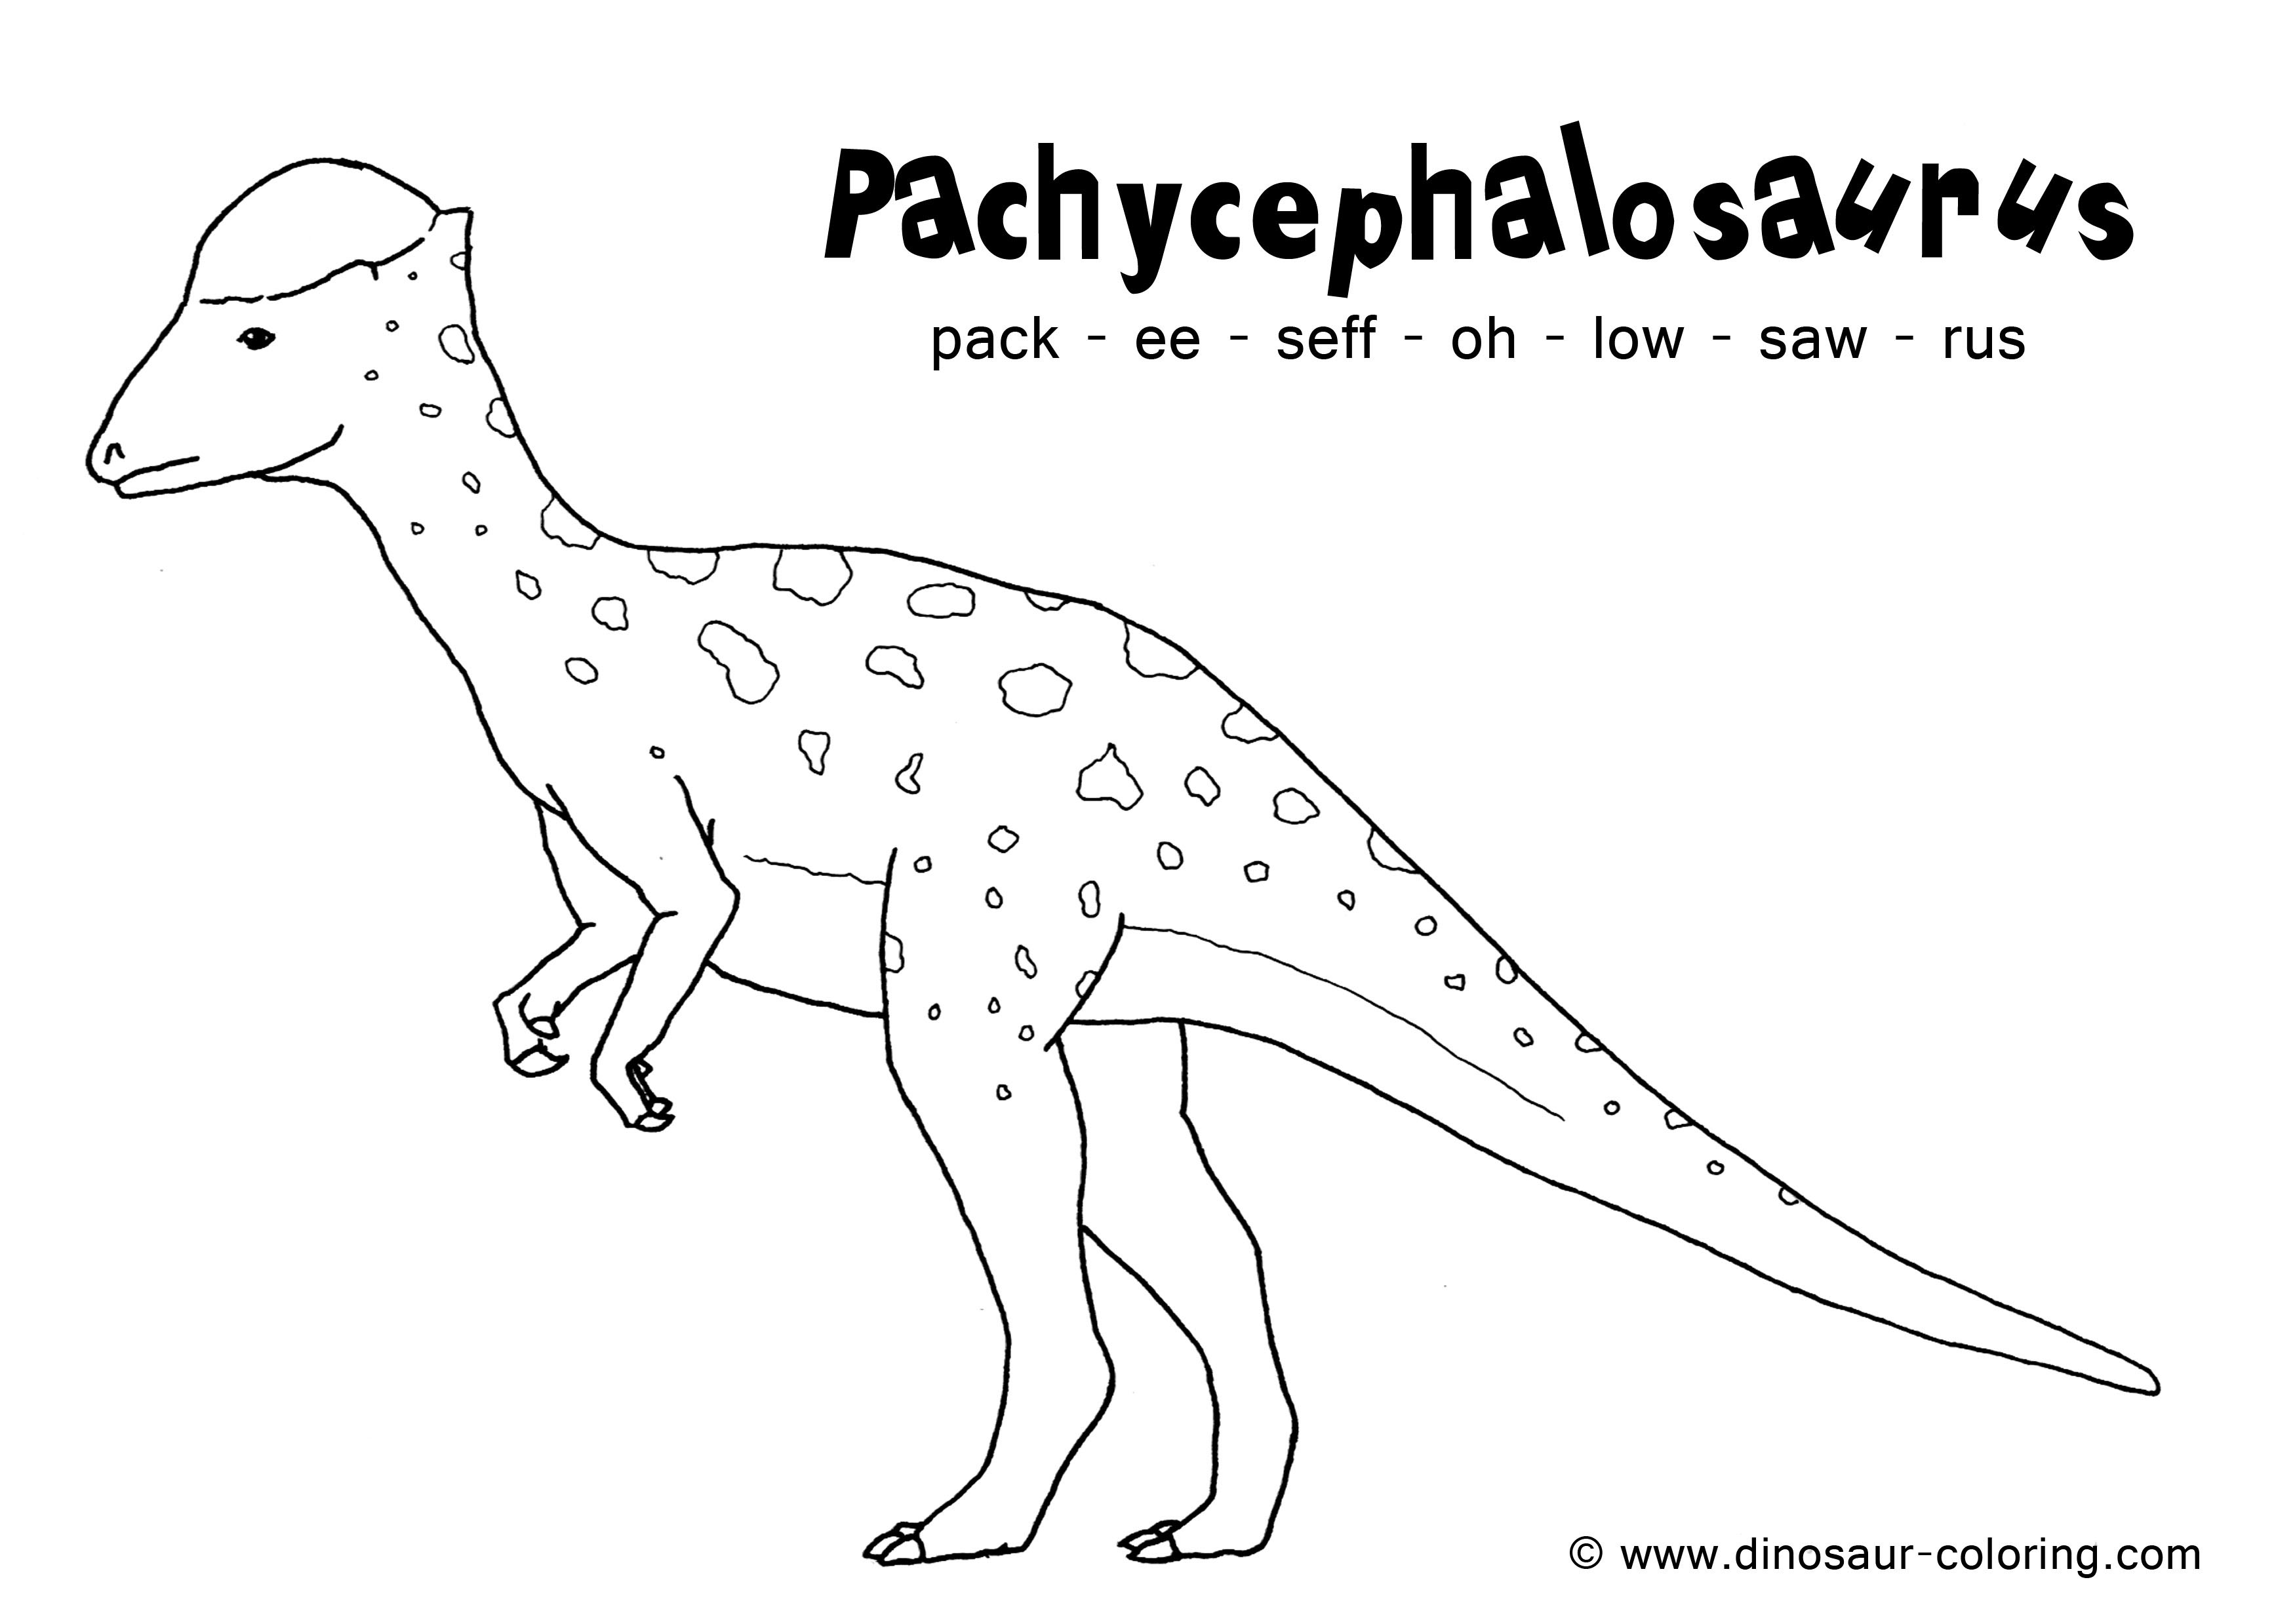 meat eating dinosaur coloring pages meat eating dinosaurs coloring pages coloring pages eating coloring meat dinosaur pages